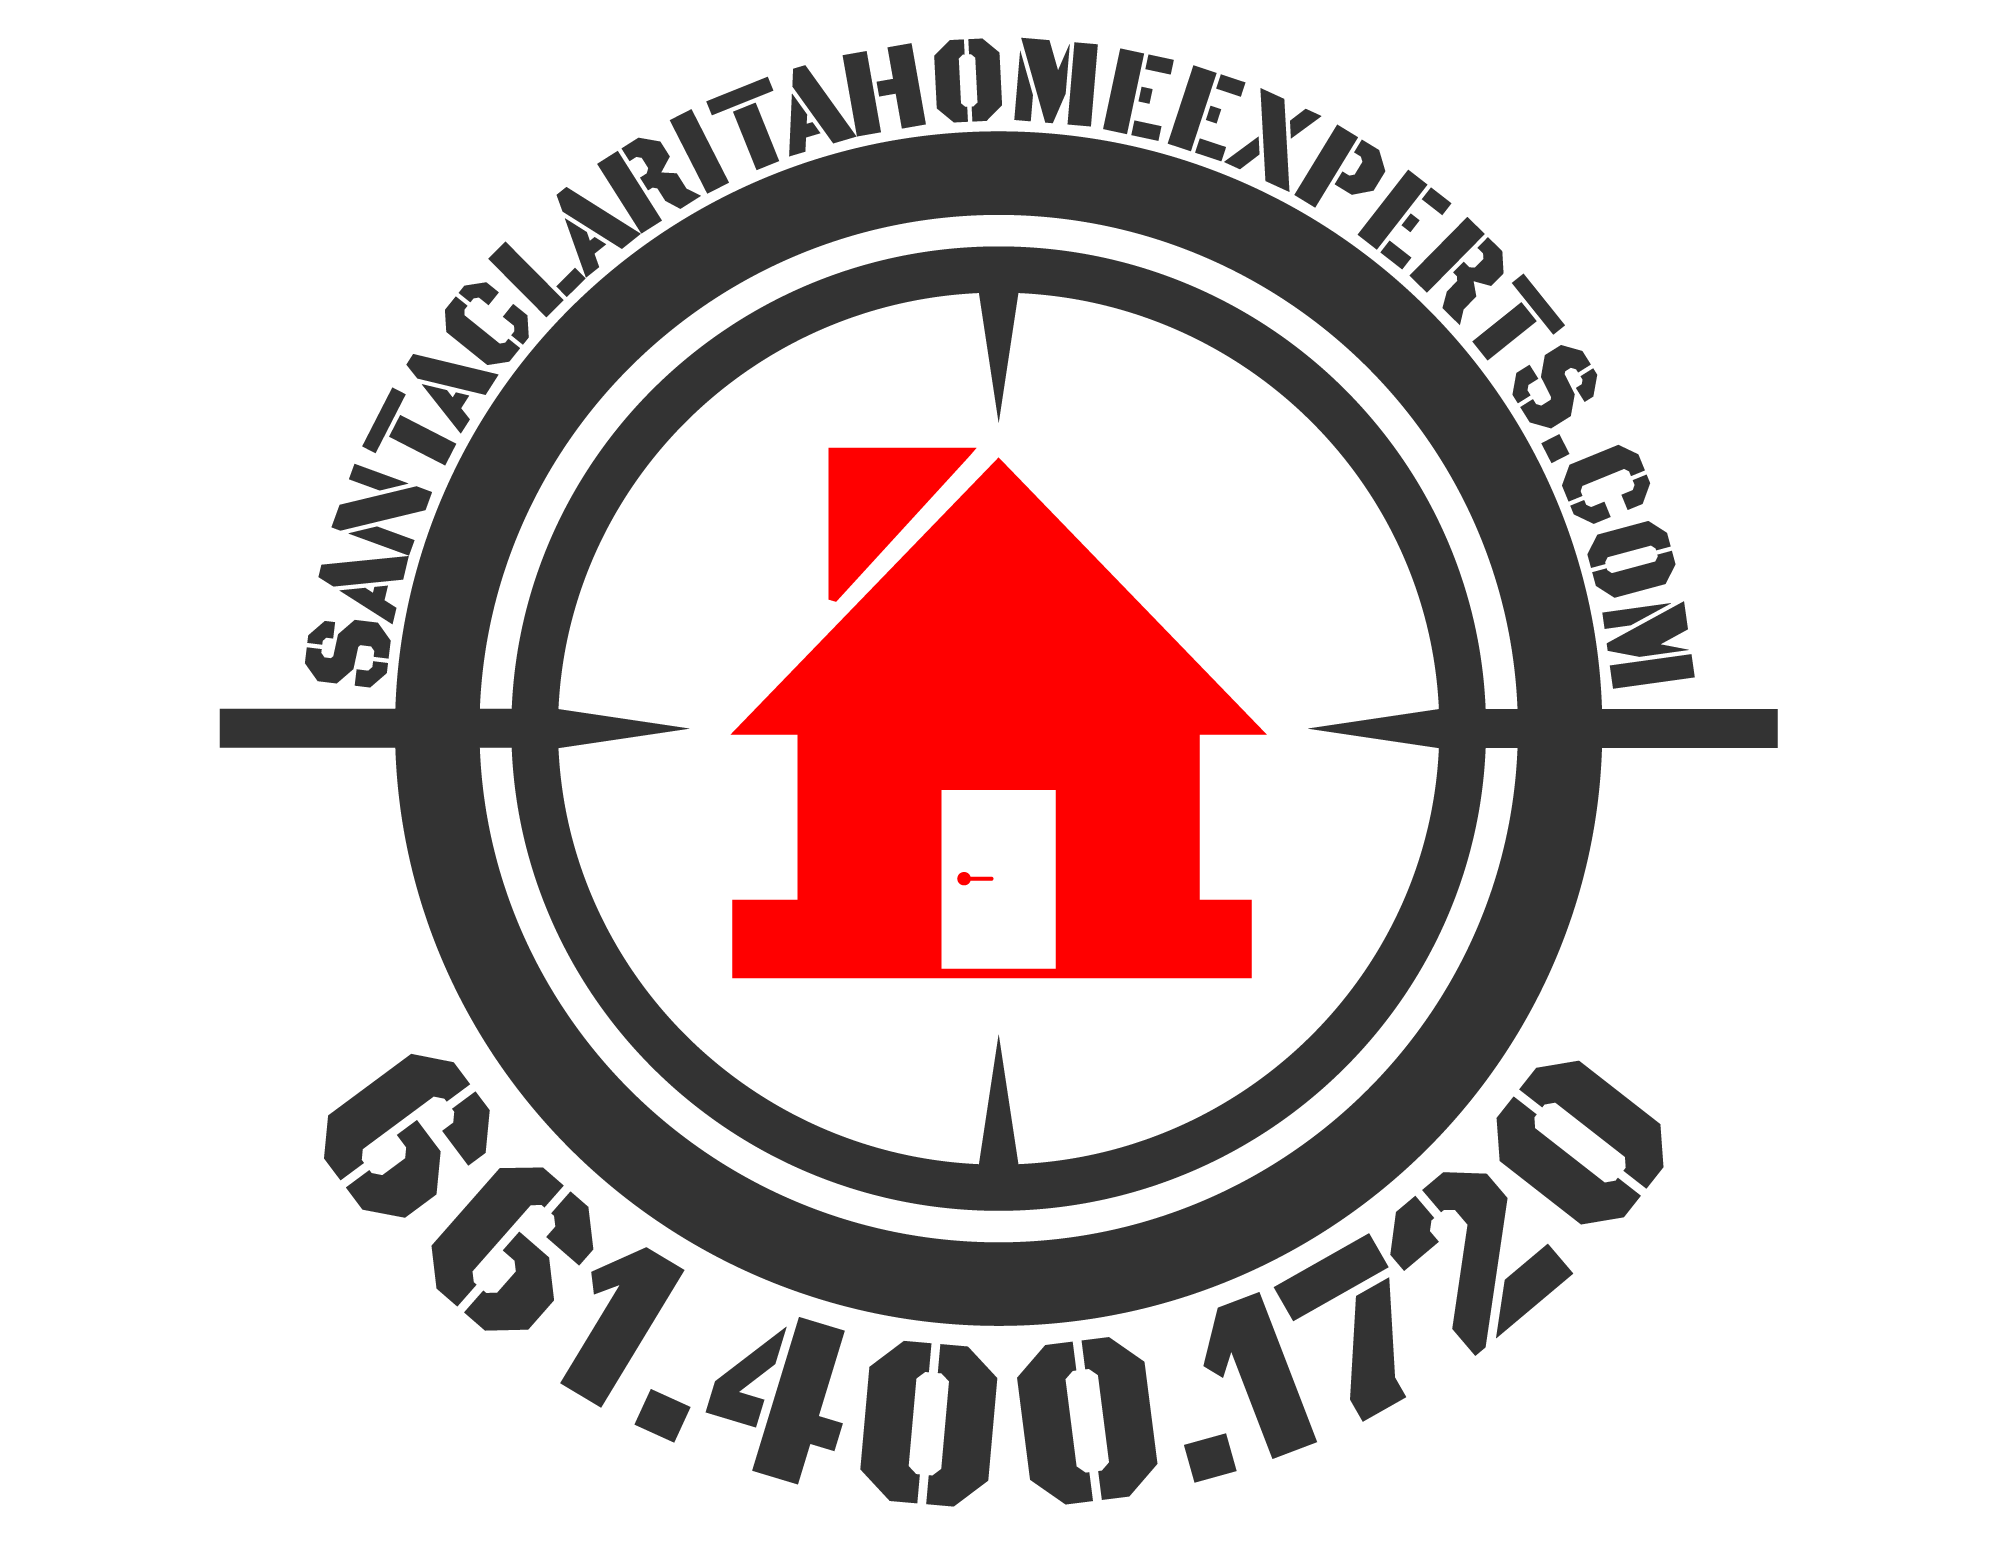 BEST Santa Clarita real estate agents and homebuyer and homeseller services